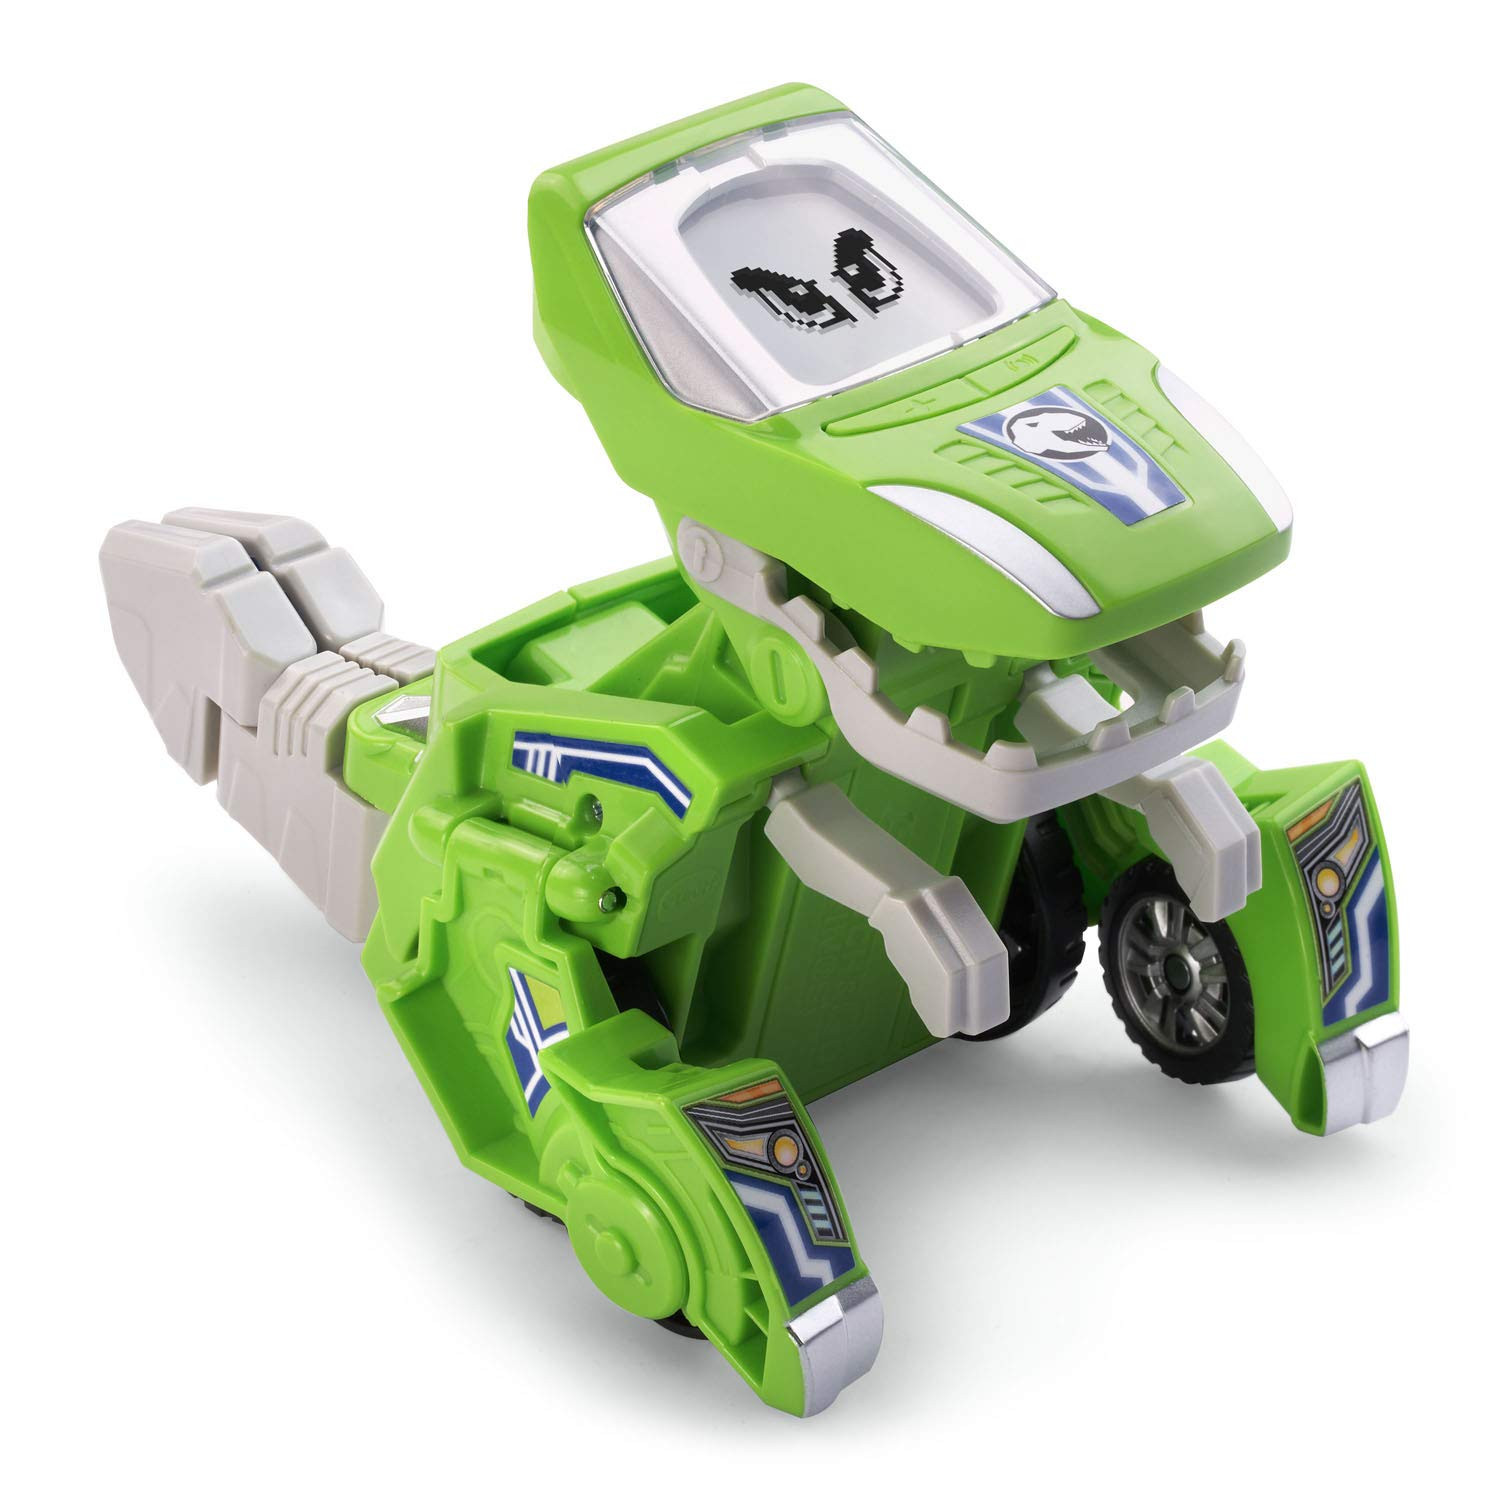 V Tech Switch and Go Dinos - Silver the T-Rex Green by VTech (Image #1)